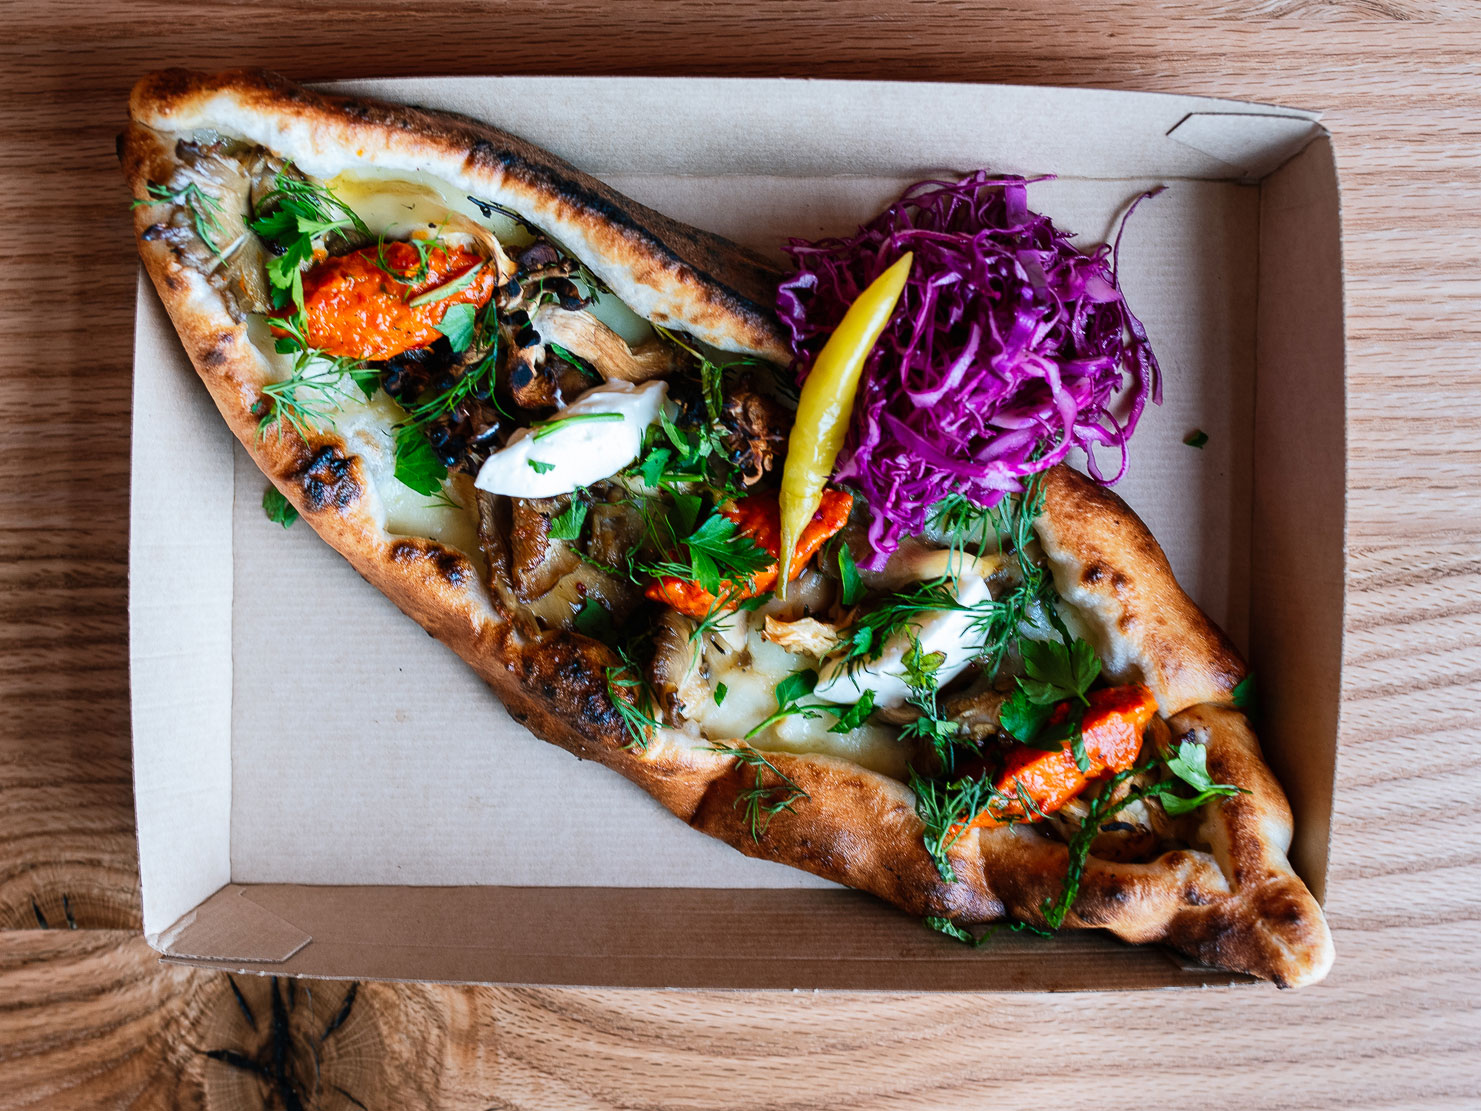 Wood-fired pide flatbread at Balkan Treat Box